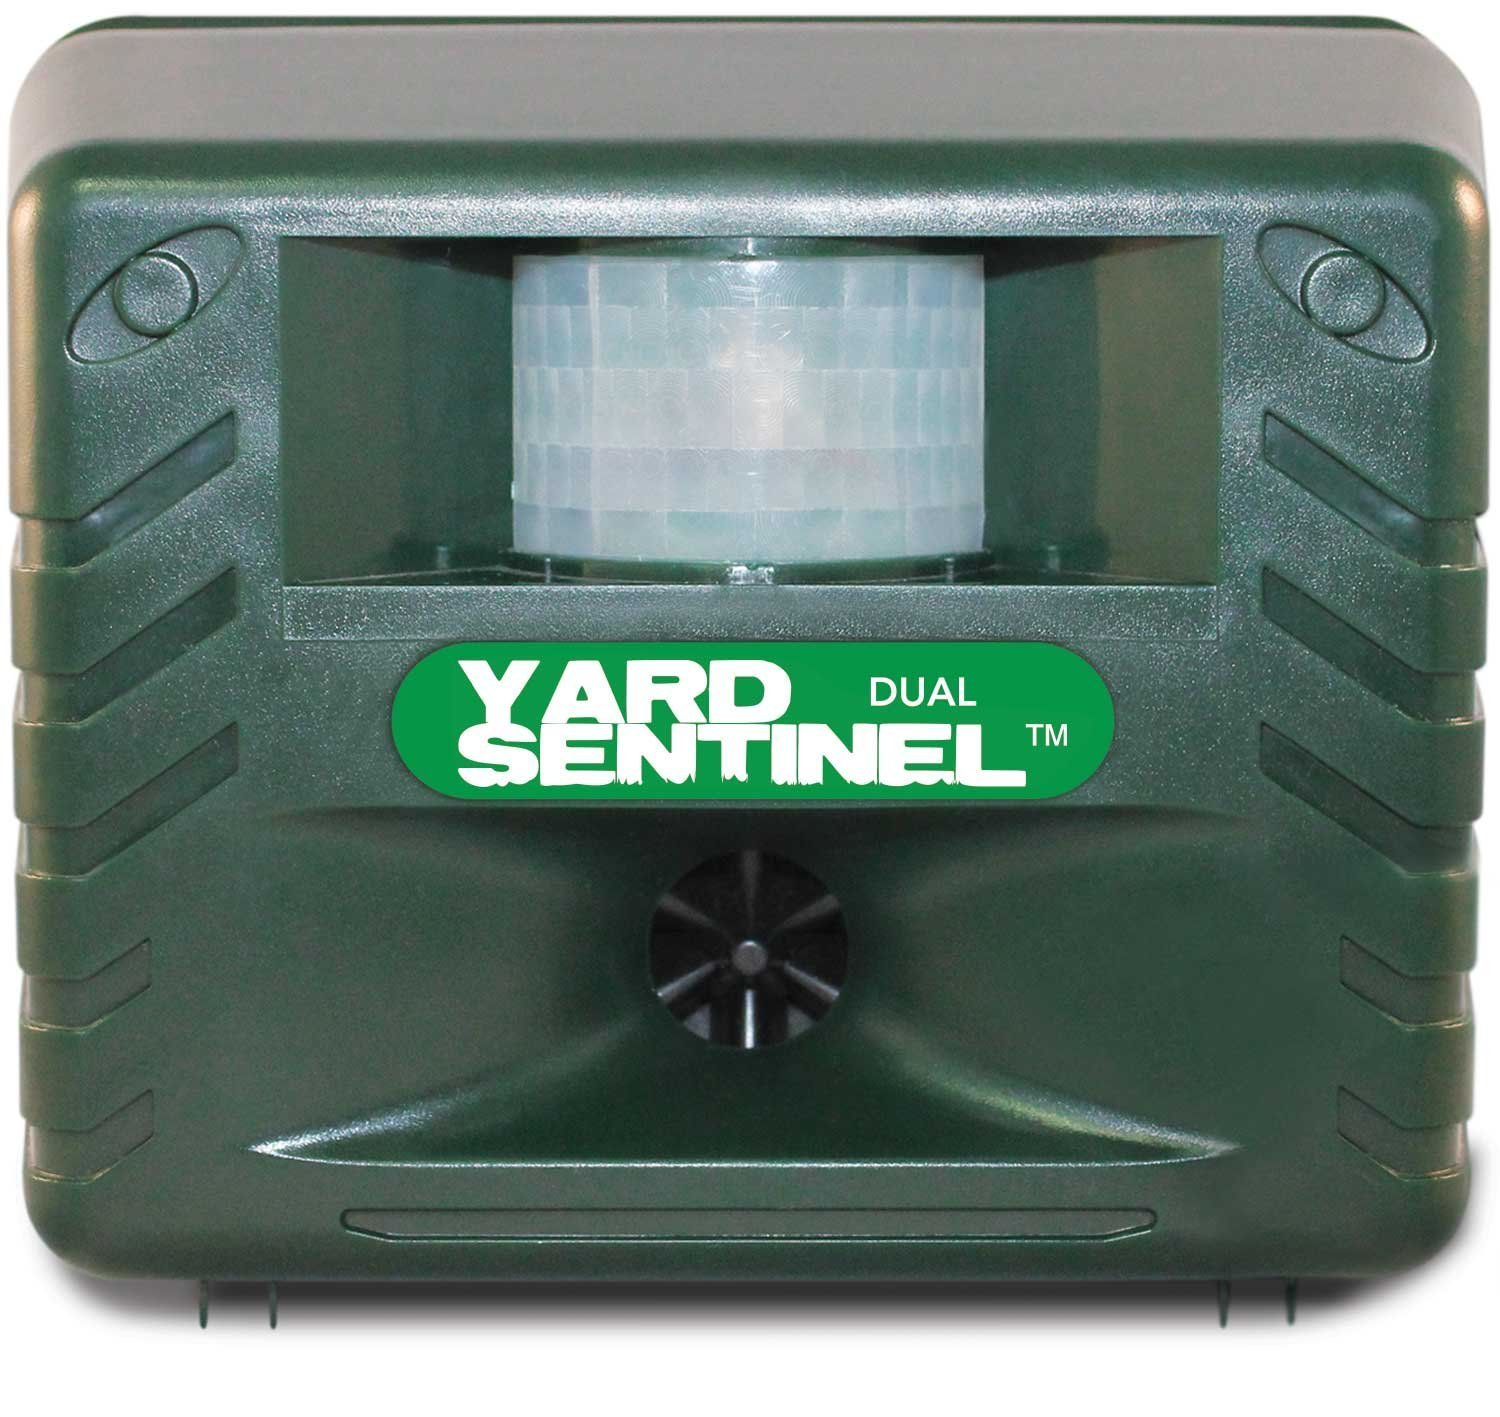 Bark Stop Free Dog Silencer Animal Pest Thdogrepellentelectroniccircuitsjpg Repeller Yard Sentinel Dual Home Repellents Garden Outdoor